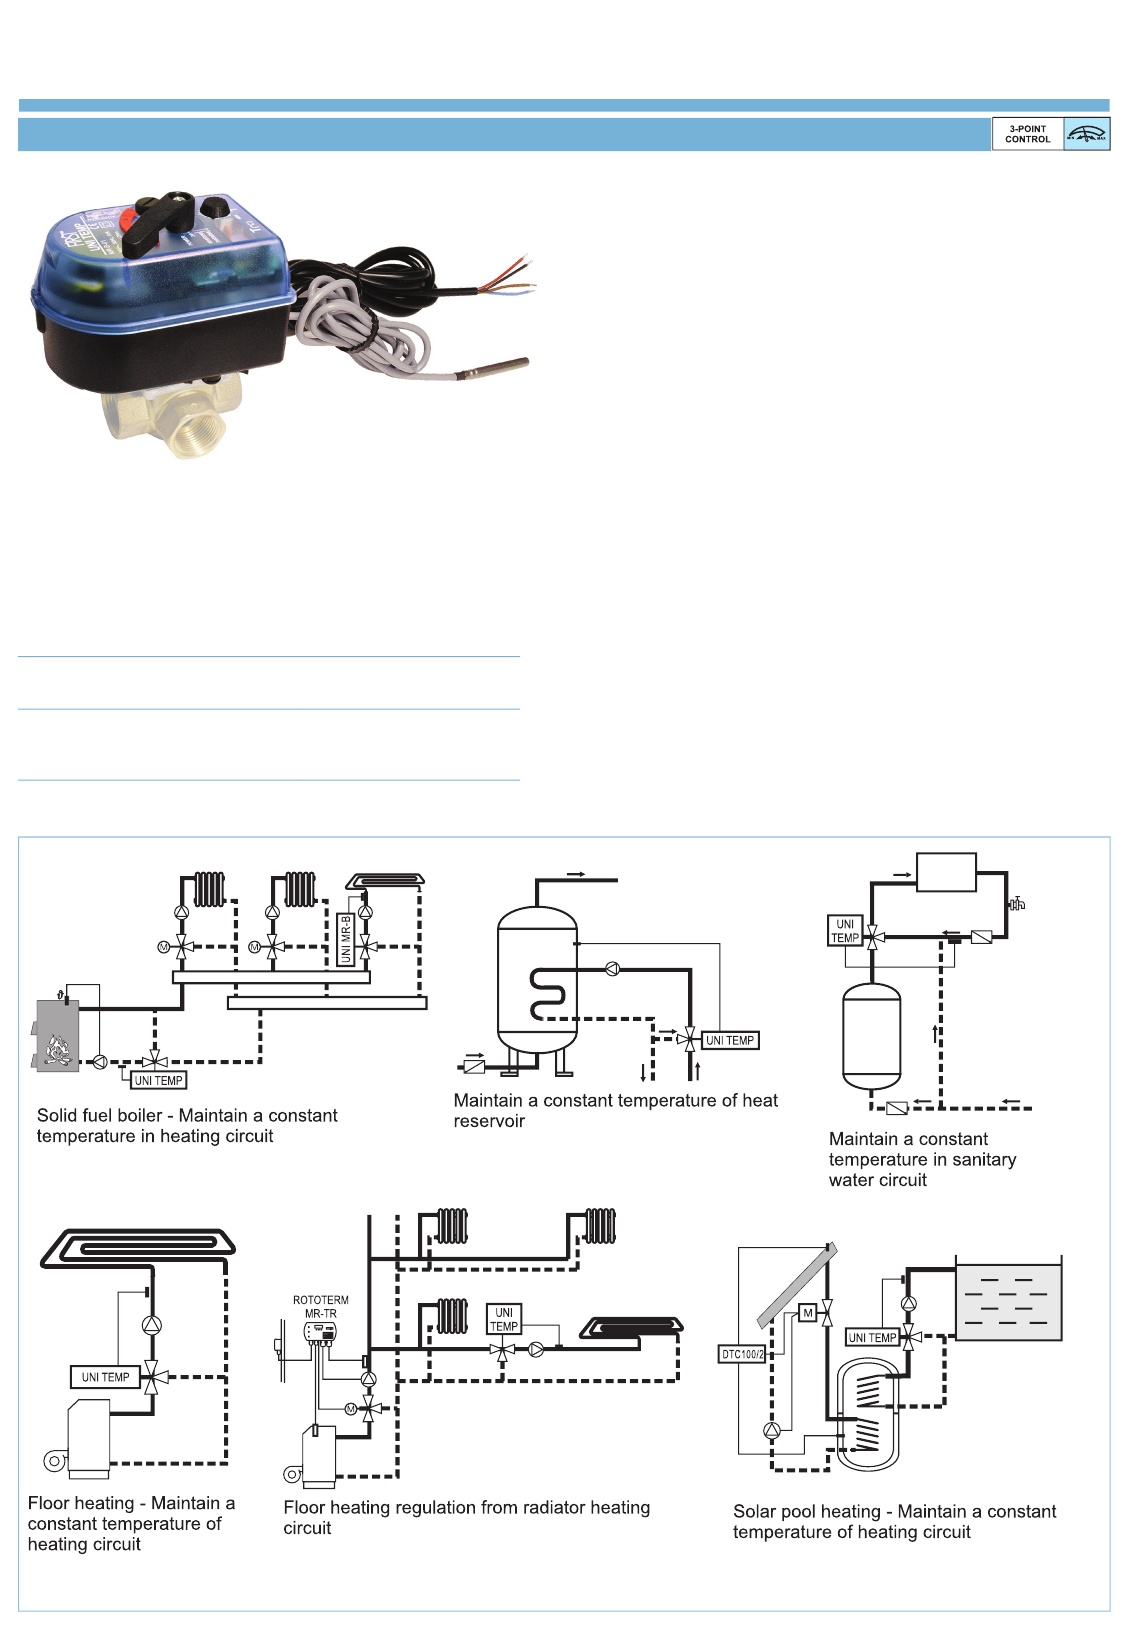 Roto Mix Wiring Diagram For Joystick - Wiring Diagrams Show Olympian Generator Control Panel Wiring Diagram on